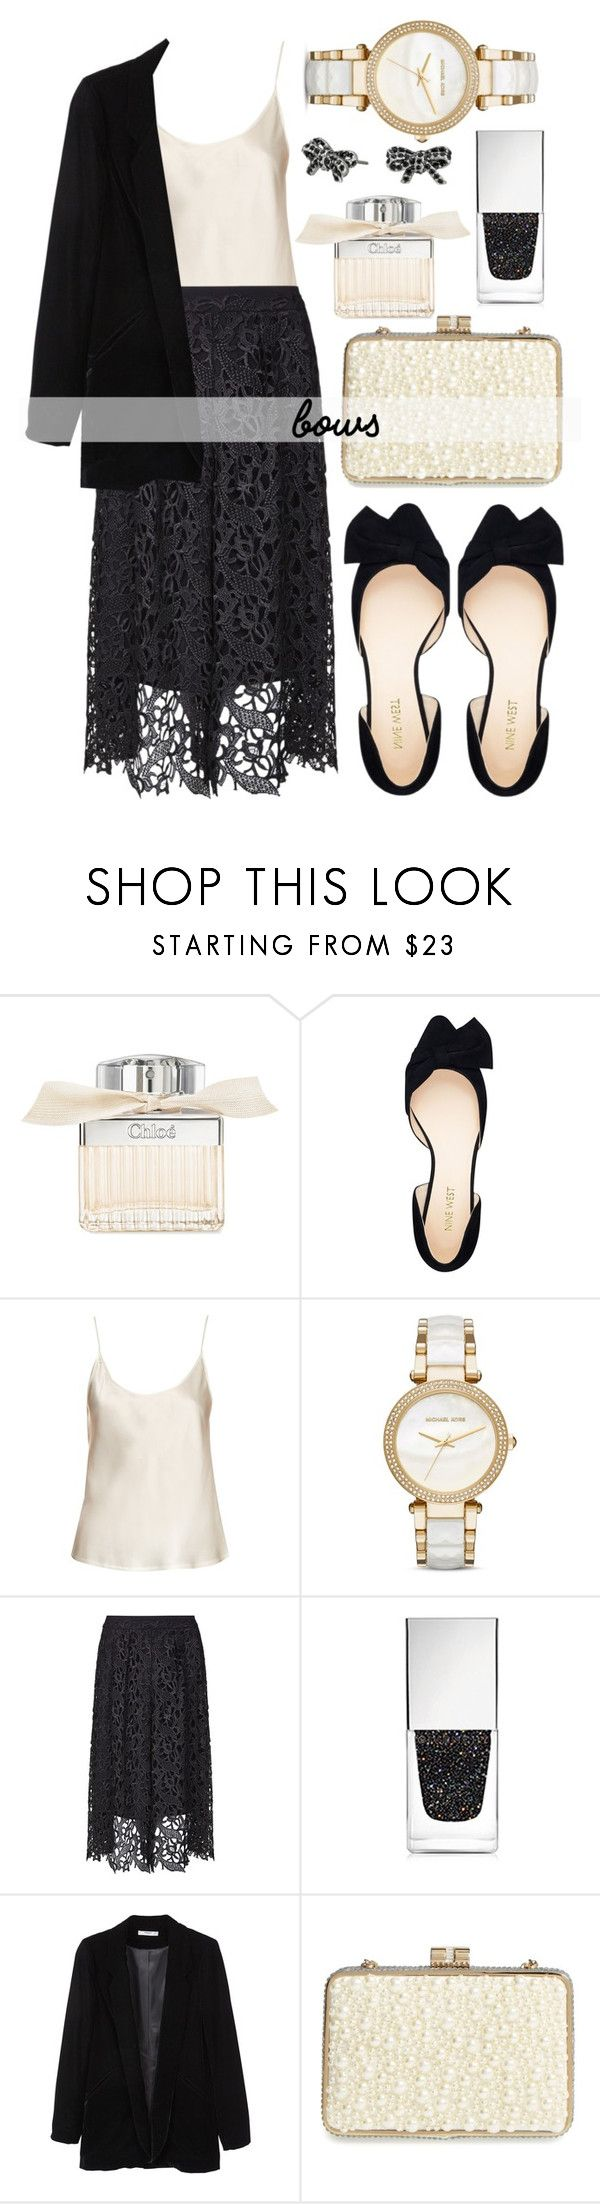 """""""Put a bow on it"""" by alaria ❤ liked on Polyvore featuring Chloé, Nine West, La Perla, Michael Kors, Three Floor, Givenchy, MANGO, Sondra Roberts, Marc Jacobs and bows"""